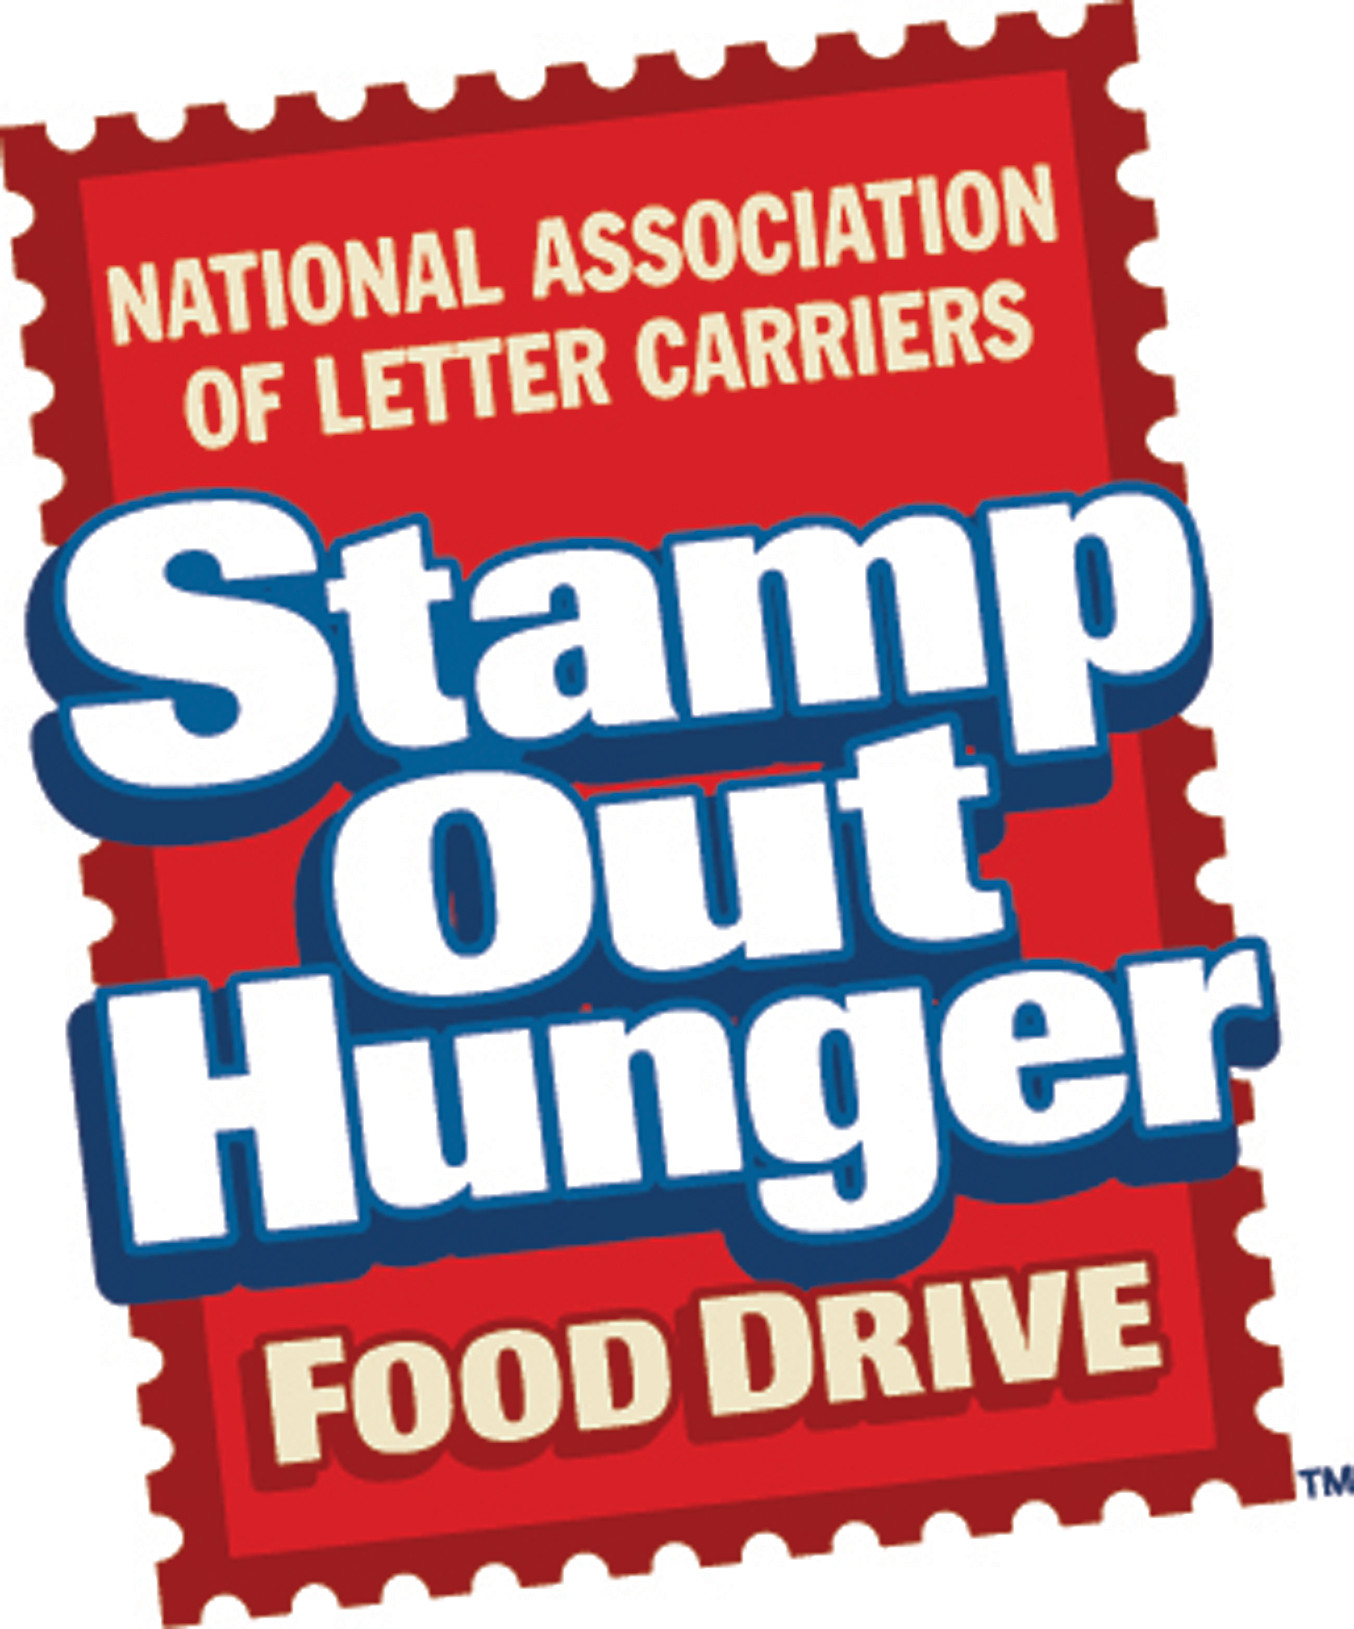 Postal workers will 'Stamp Out Hunger' on Saturday